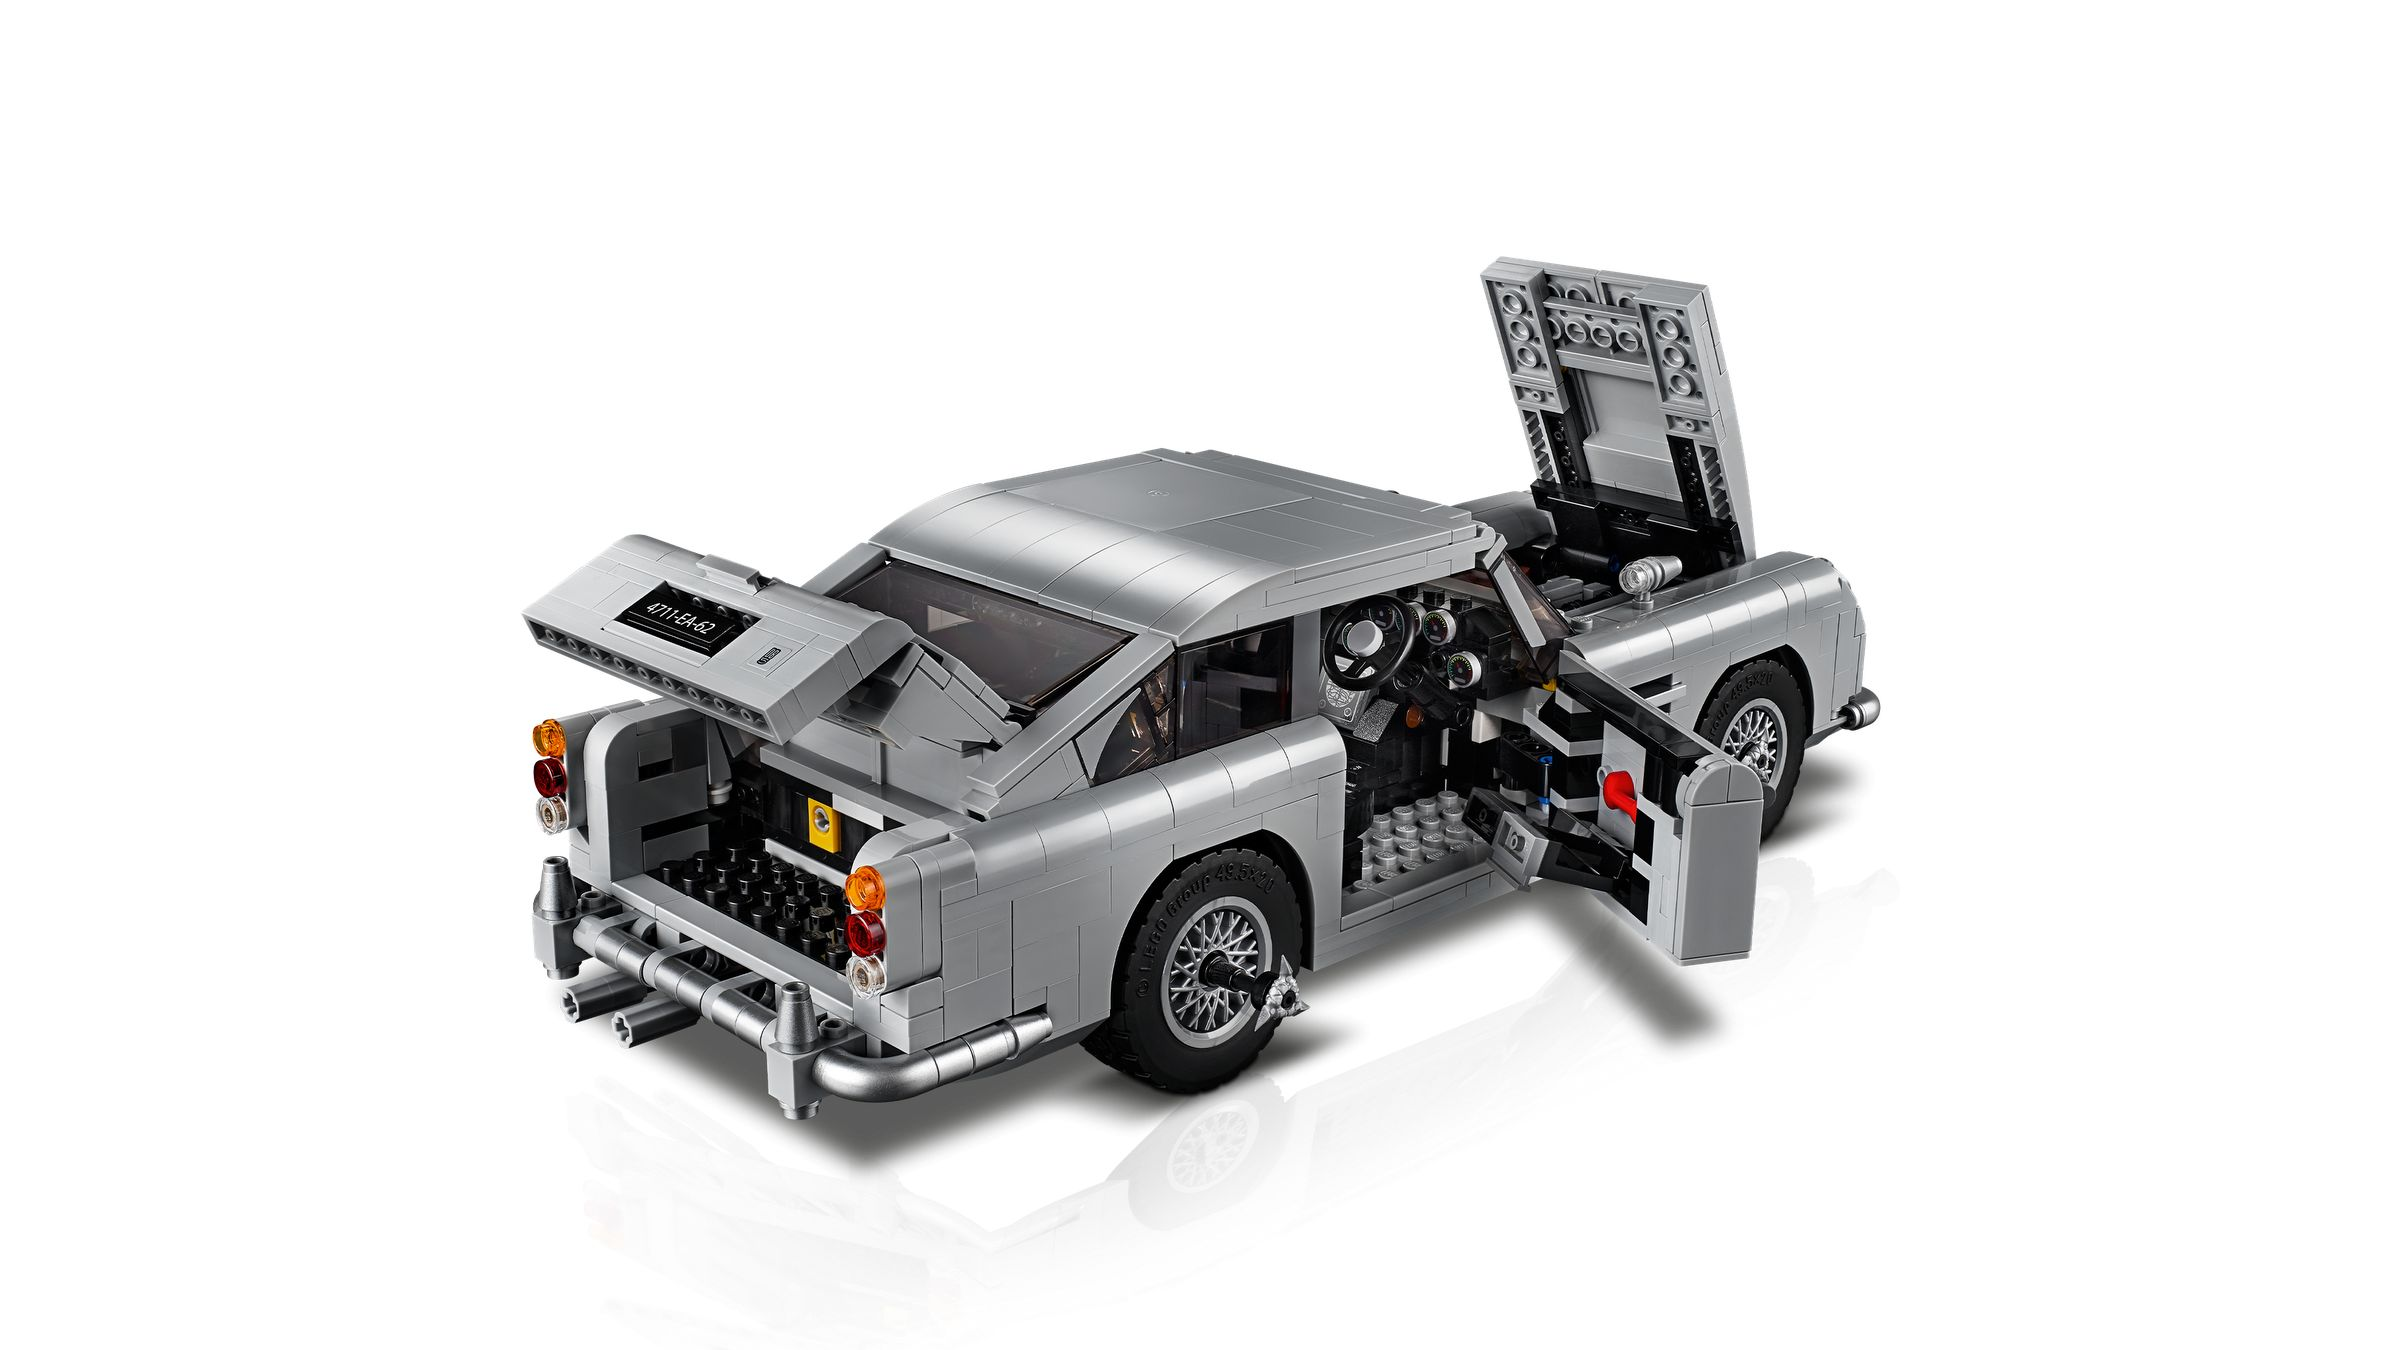 LEGO Advanced Models 10262 James Bond Aston Martin DB5 LEGO_10262_alt2.jpg